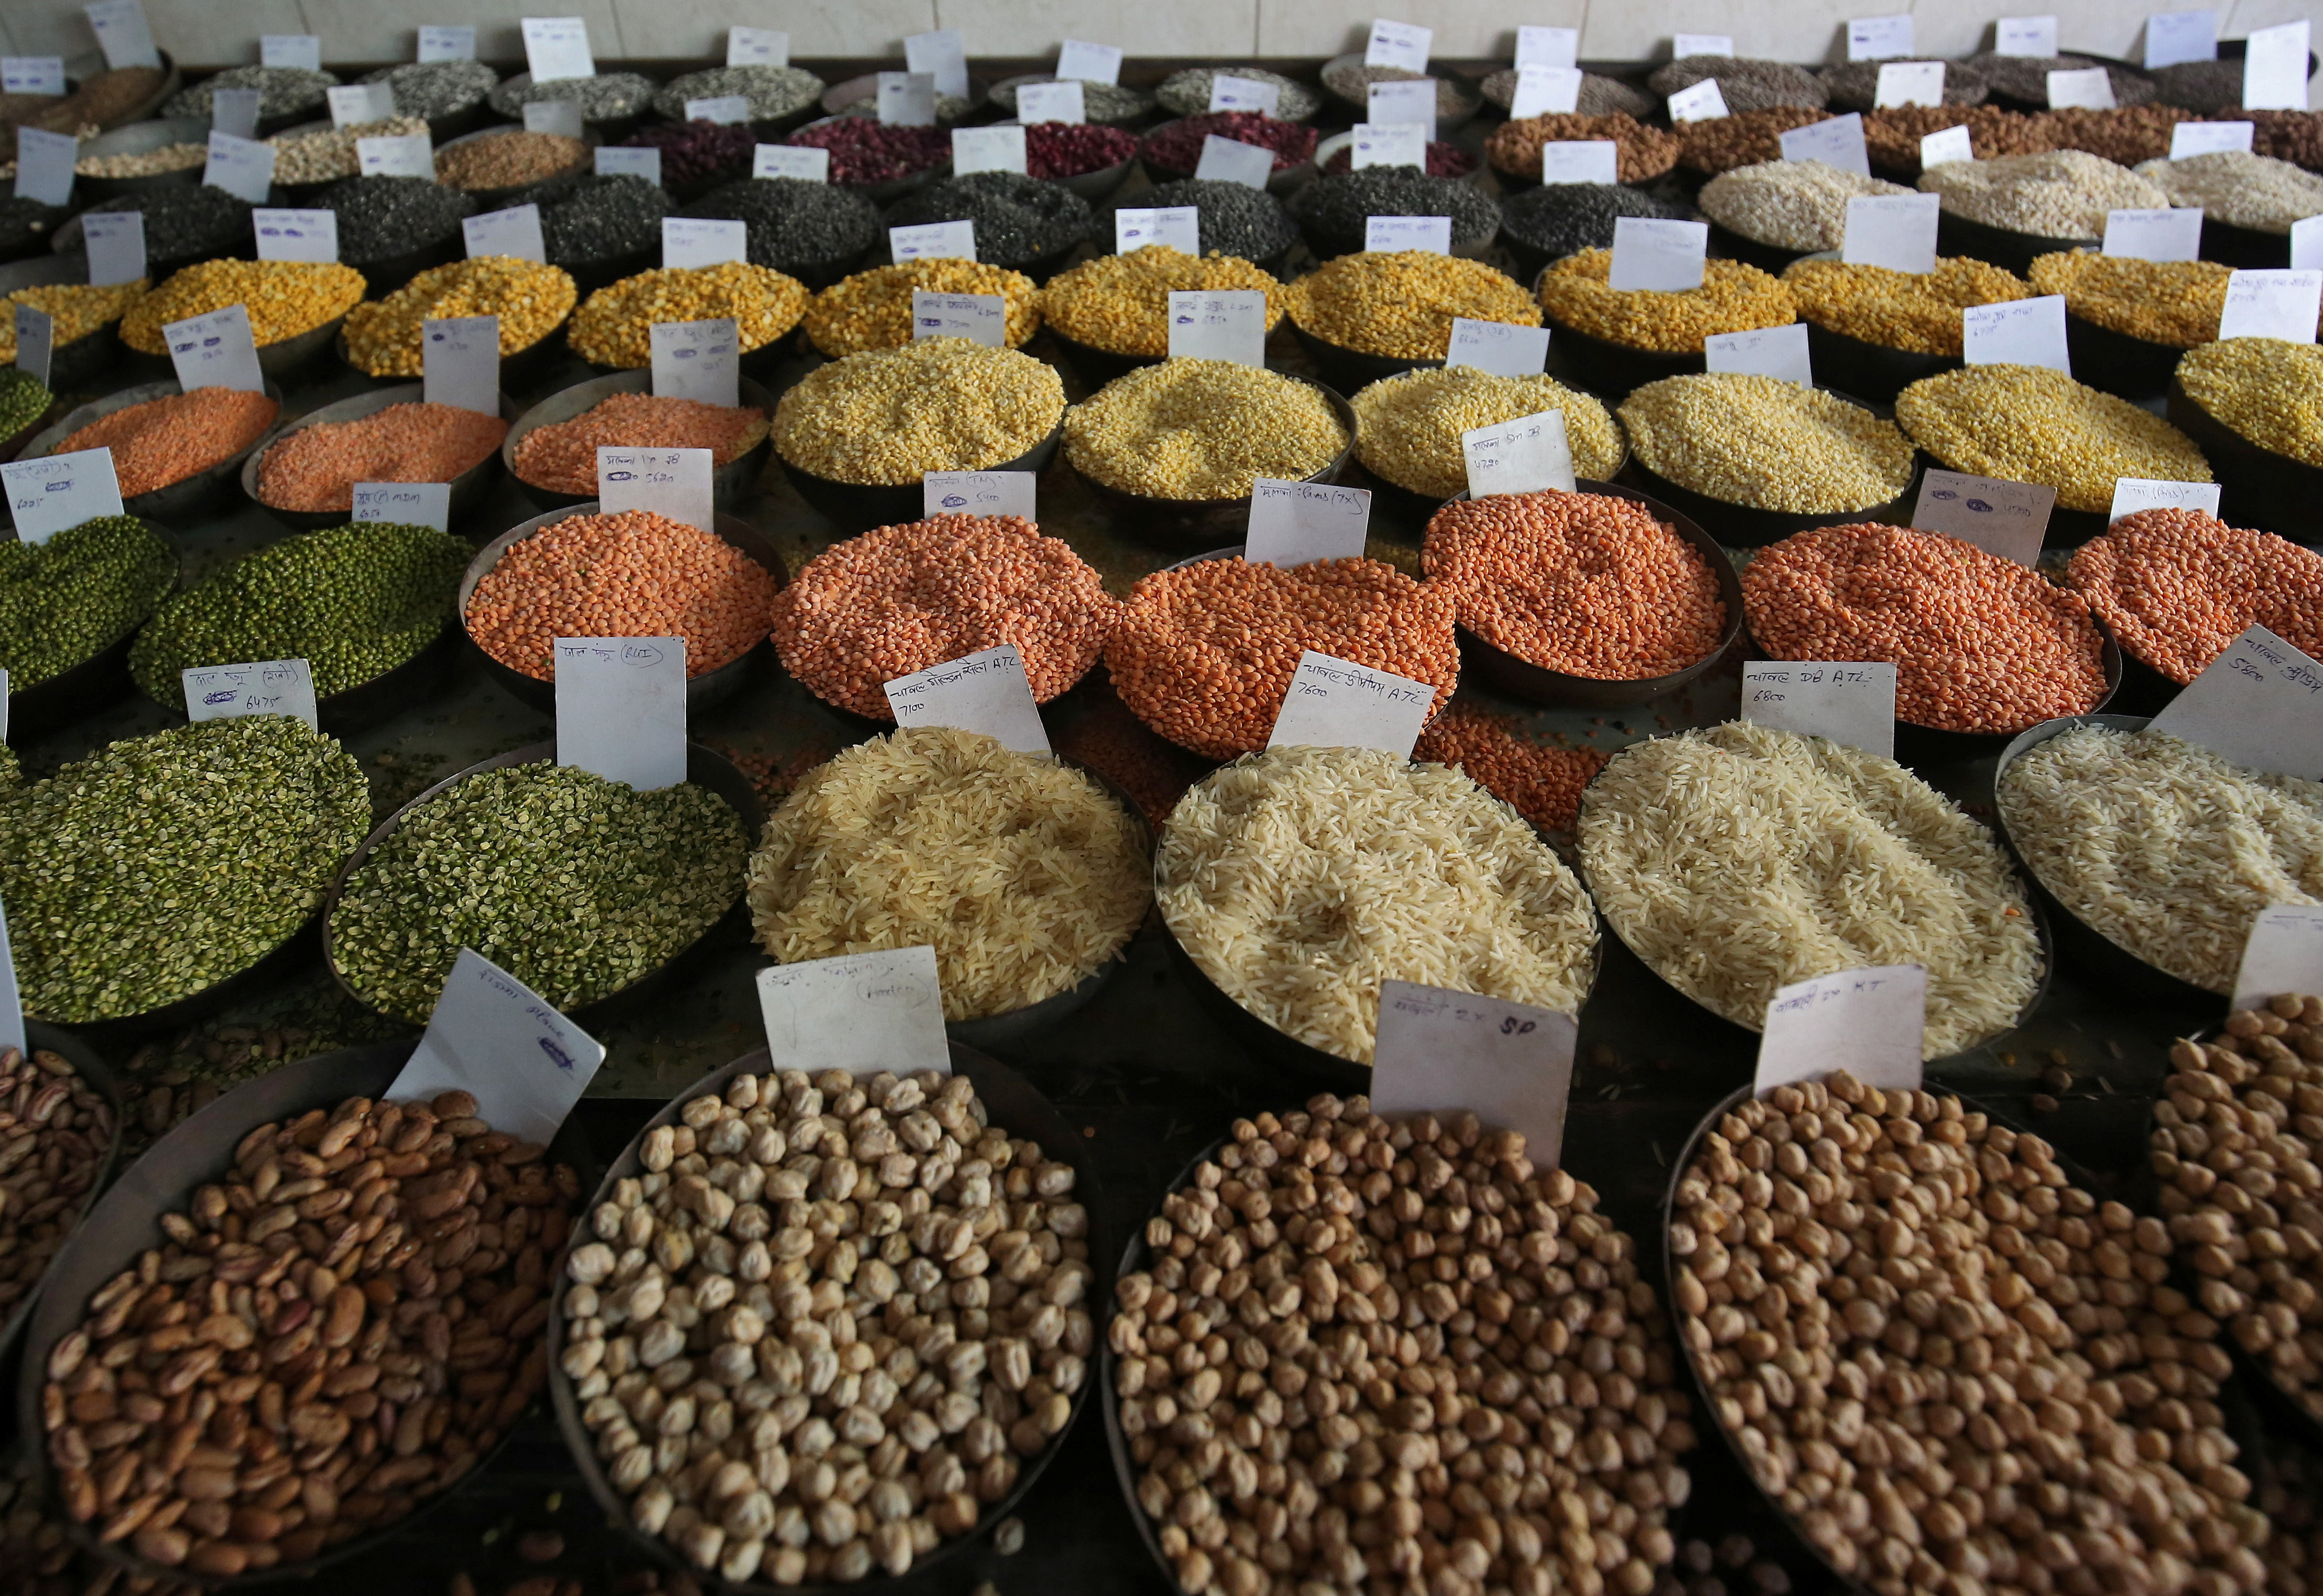 Price tags are seen on the samples of rice and lentils that are kept on display for sale at a wholesale market in the old quarters of Delhi, India, June 7, 2018. REUTERS/Amit Dave - RC16E874CAC0